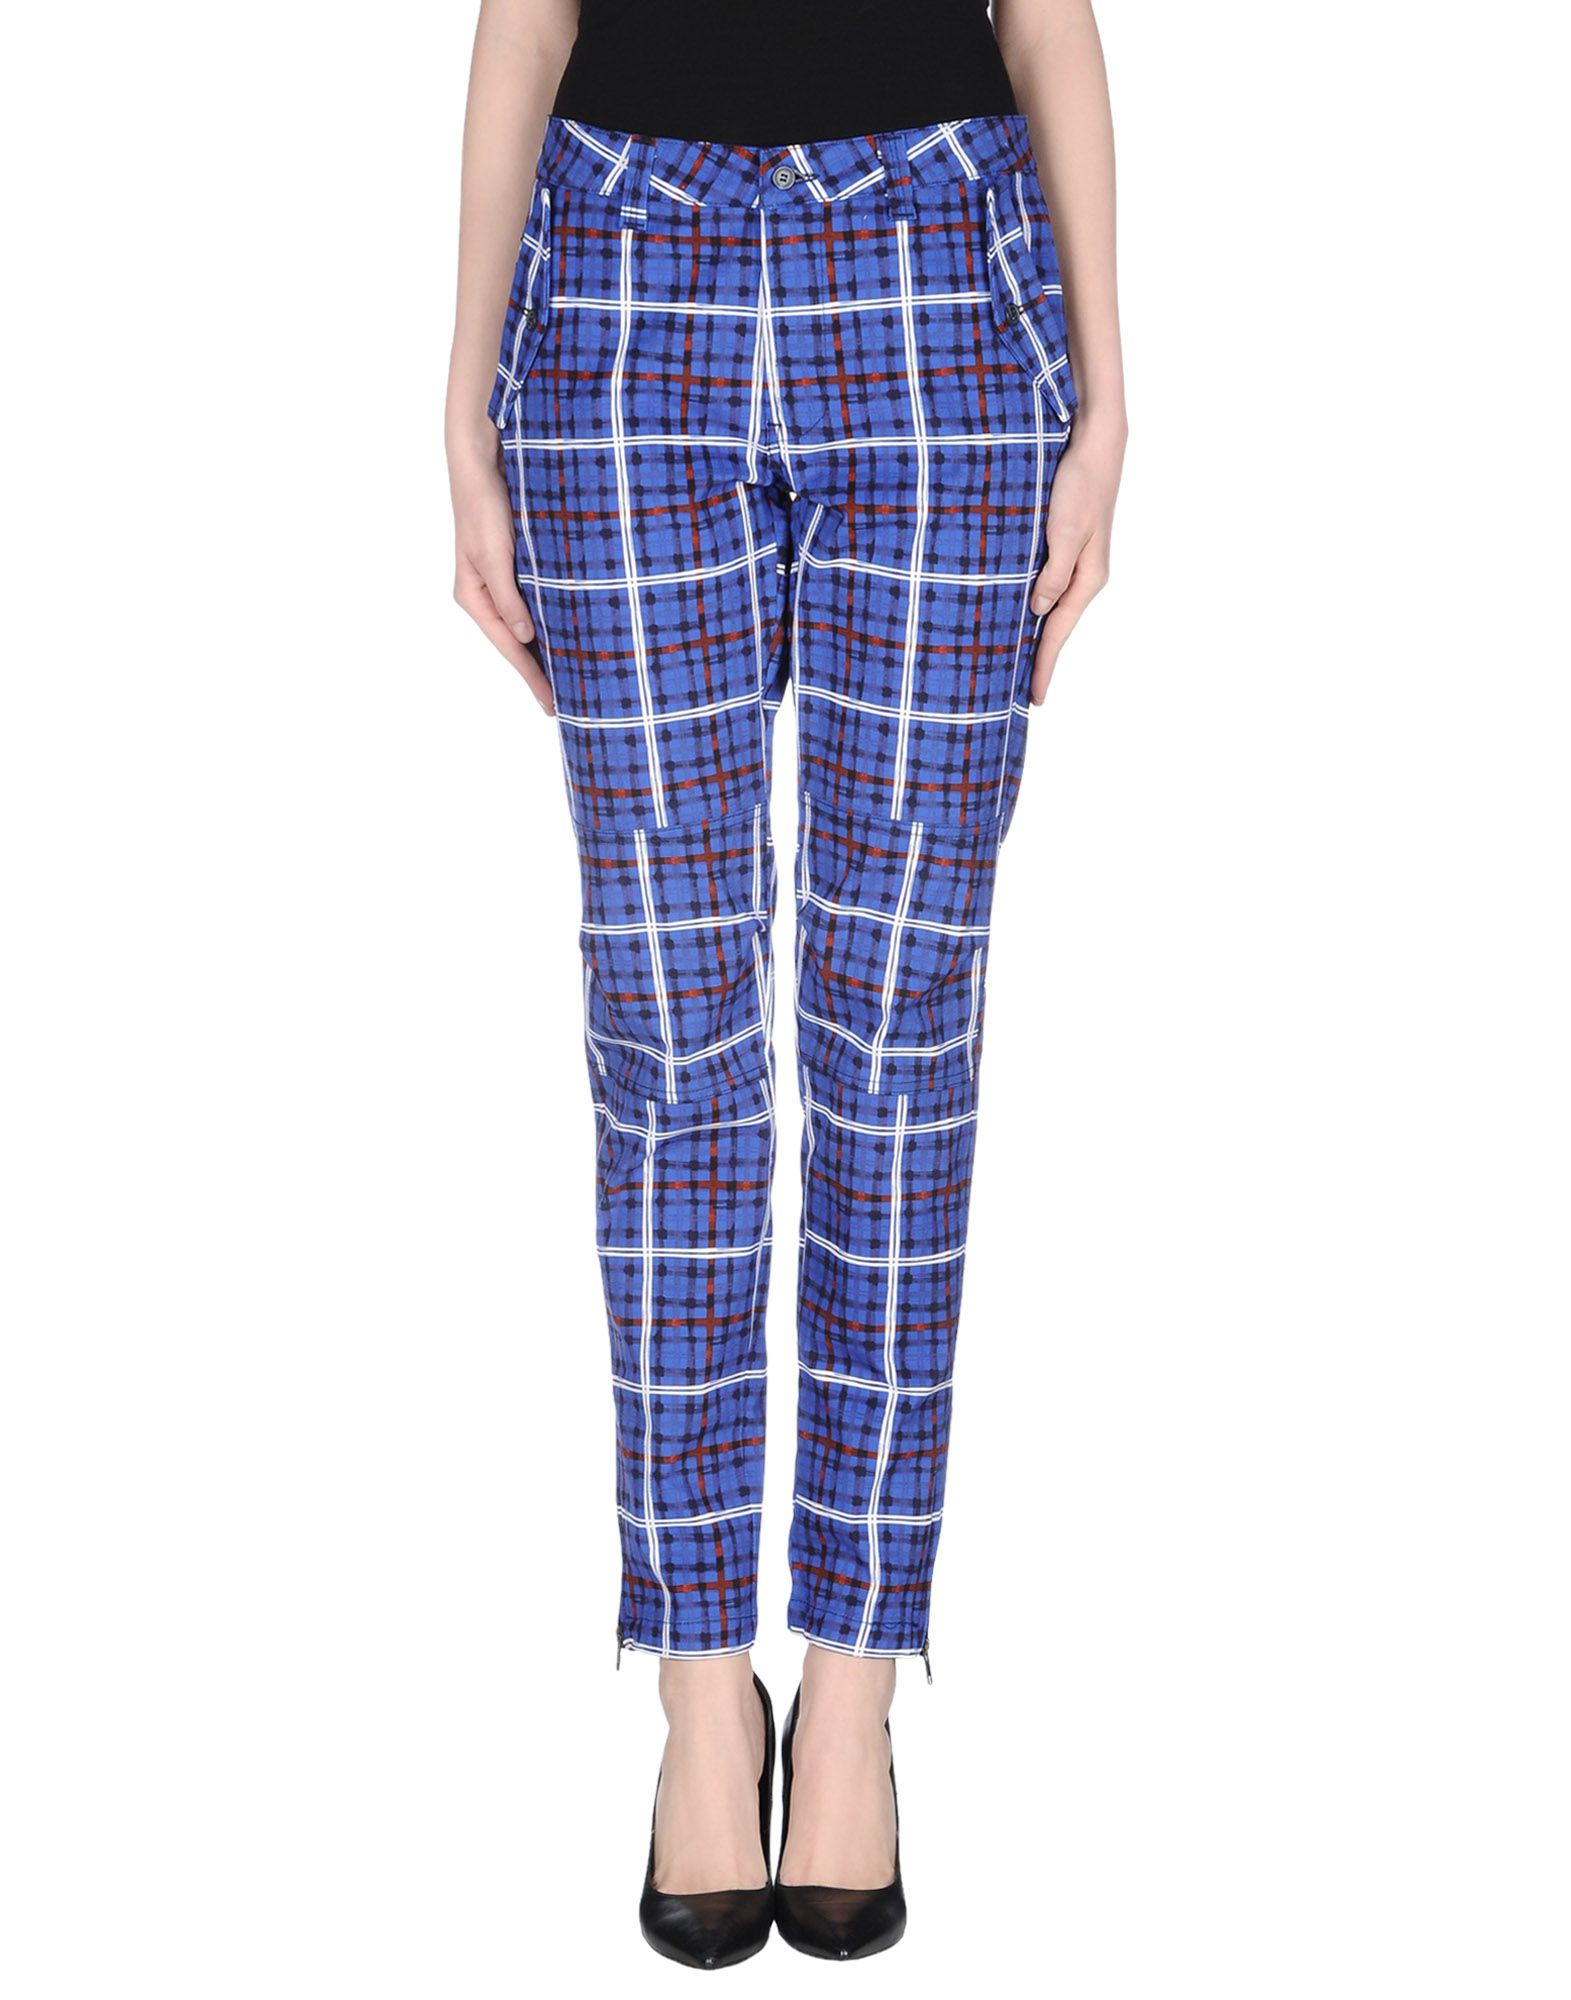 AIMO RICHLY Casual Pants in Bright Blue